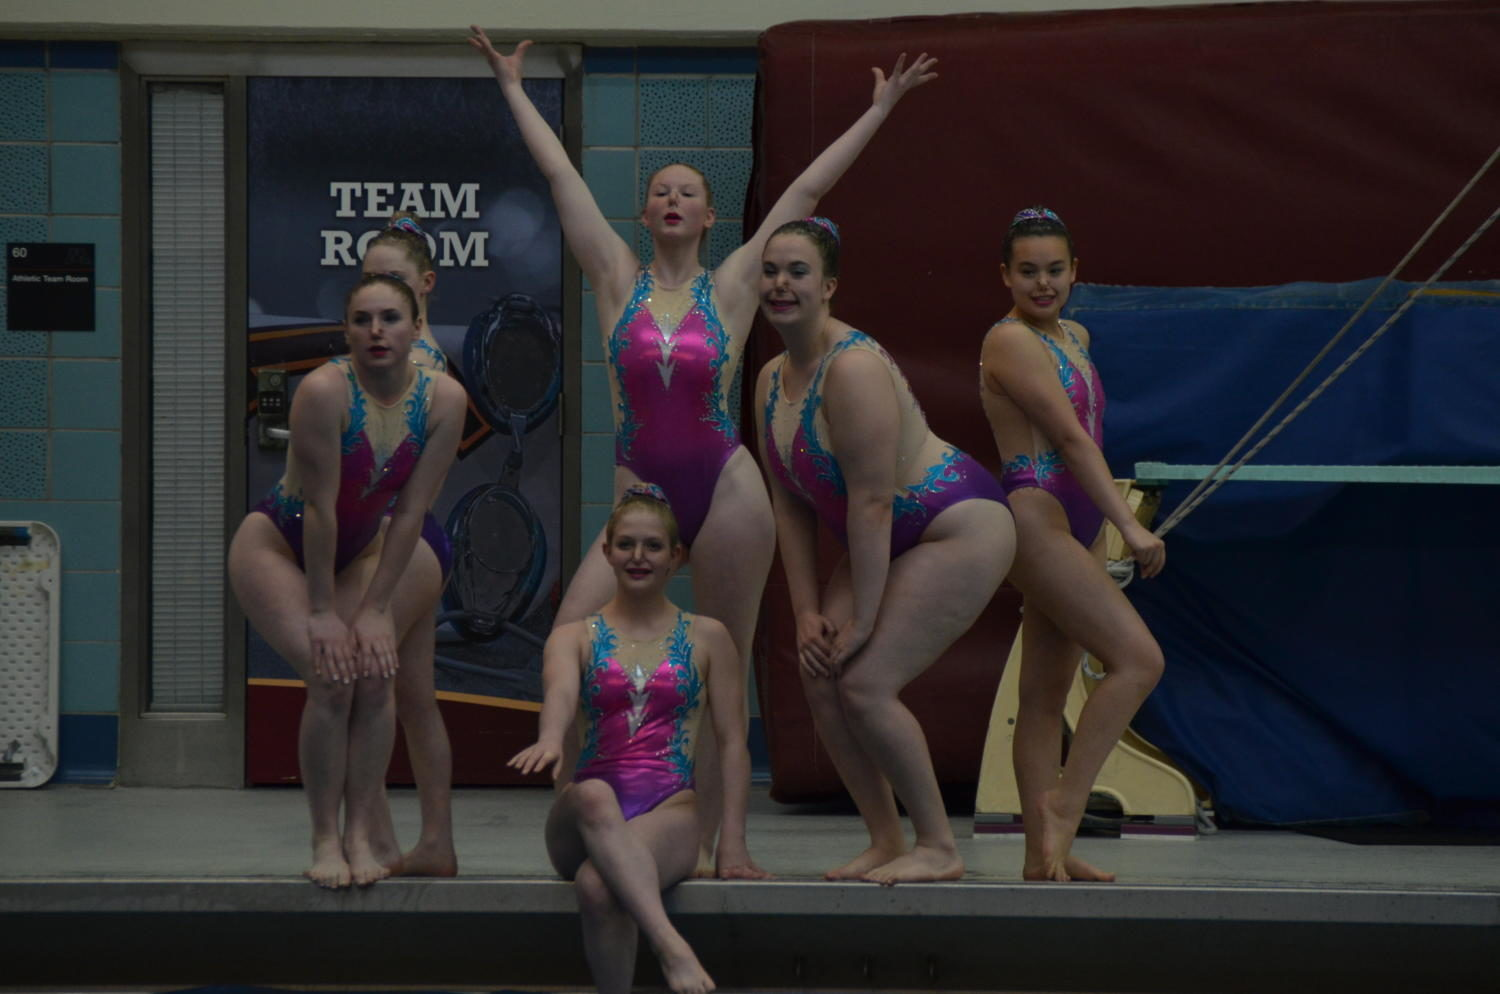 The Extended division team of Lola Brown and Amelia Merfeld, sophomores, Kristen Ho and Alyssa Peck, juniors, and Maggie Cleary and Sophie Dirnberger, seniors, performs their Britney Spears-inspired routine at the 2017 Minnesota Synchronized Swimming State Invitational on May 26.